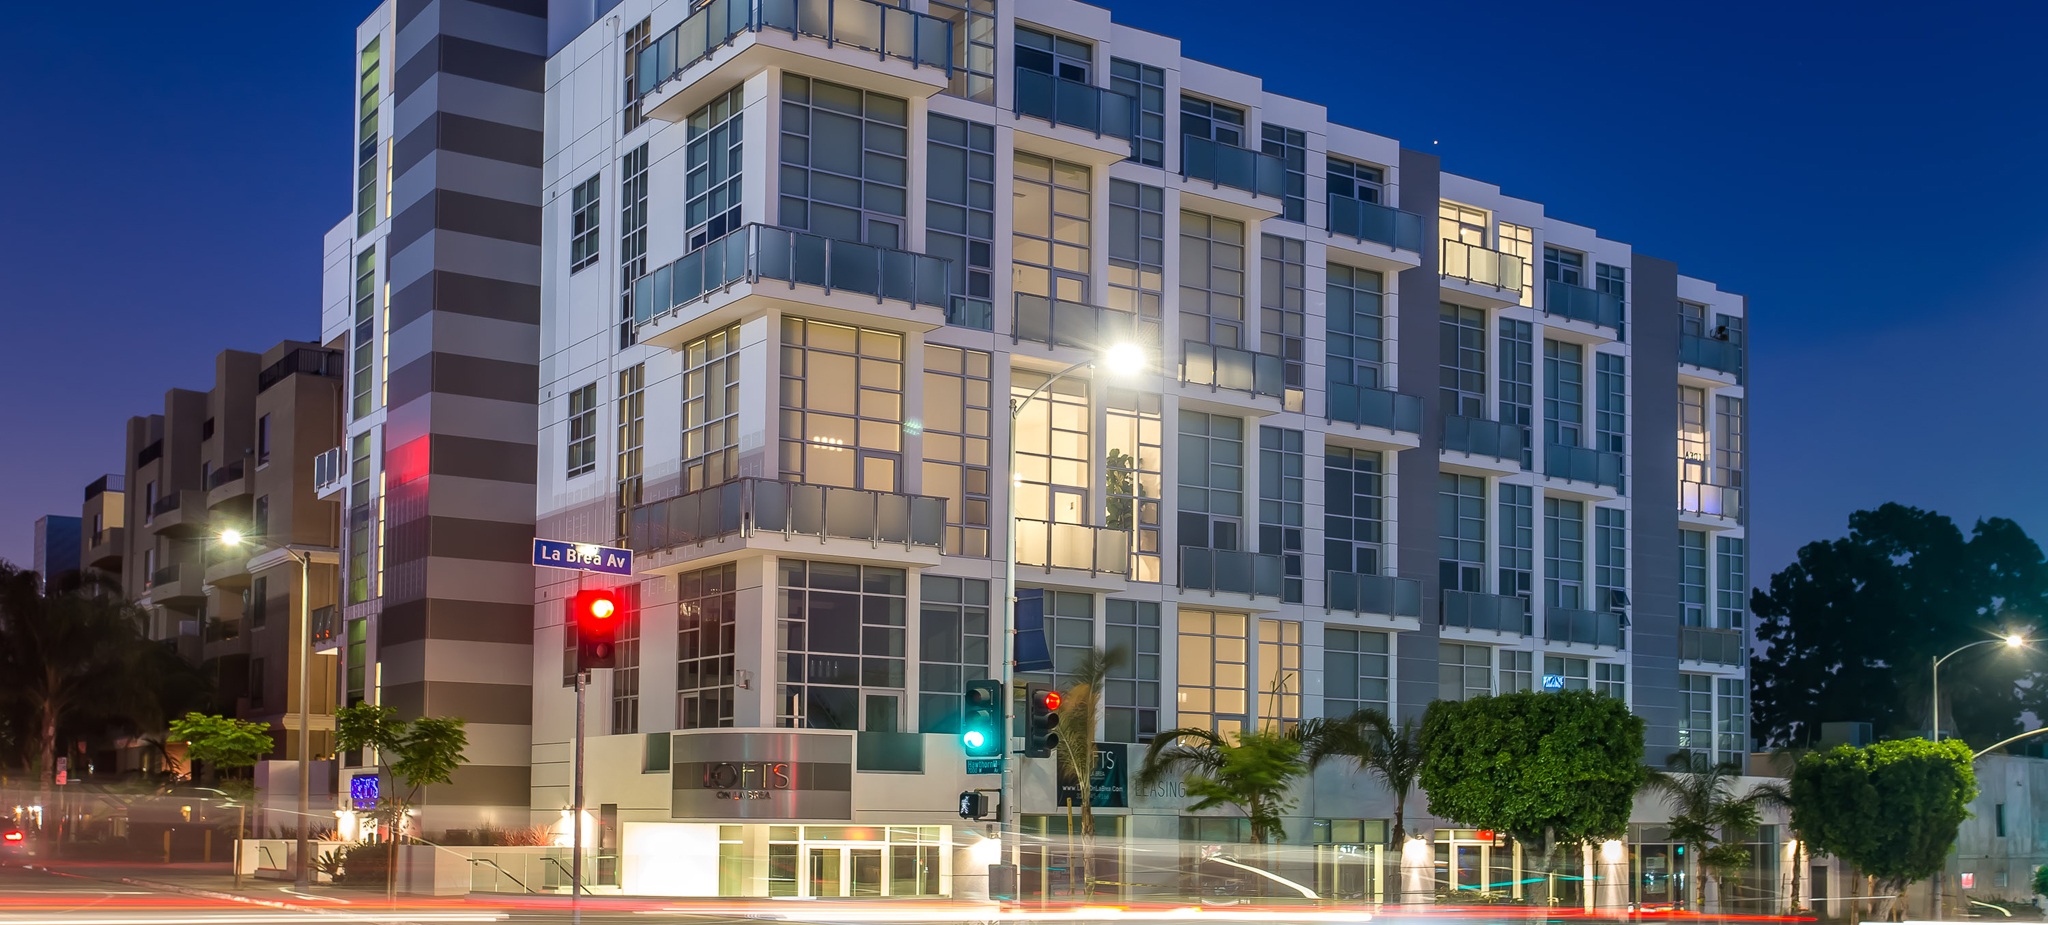 Luxury Loft Apartments In Hollywood Welcome To The Lofts On La Brea